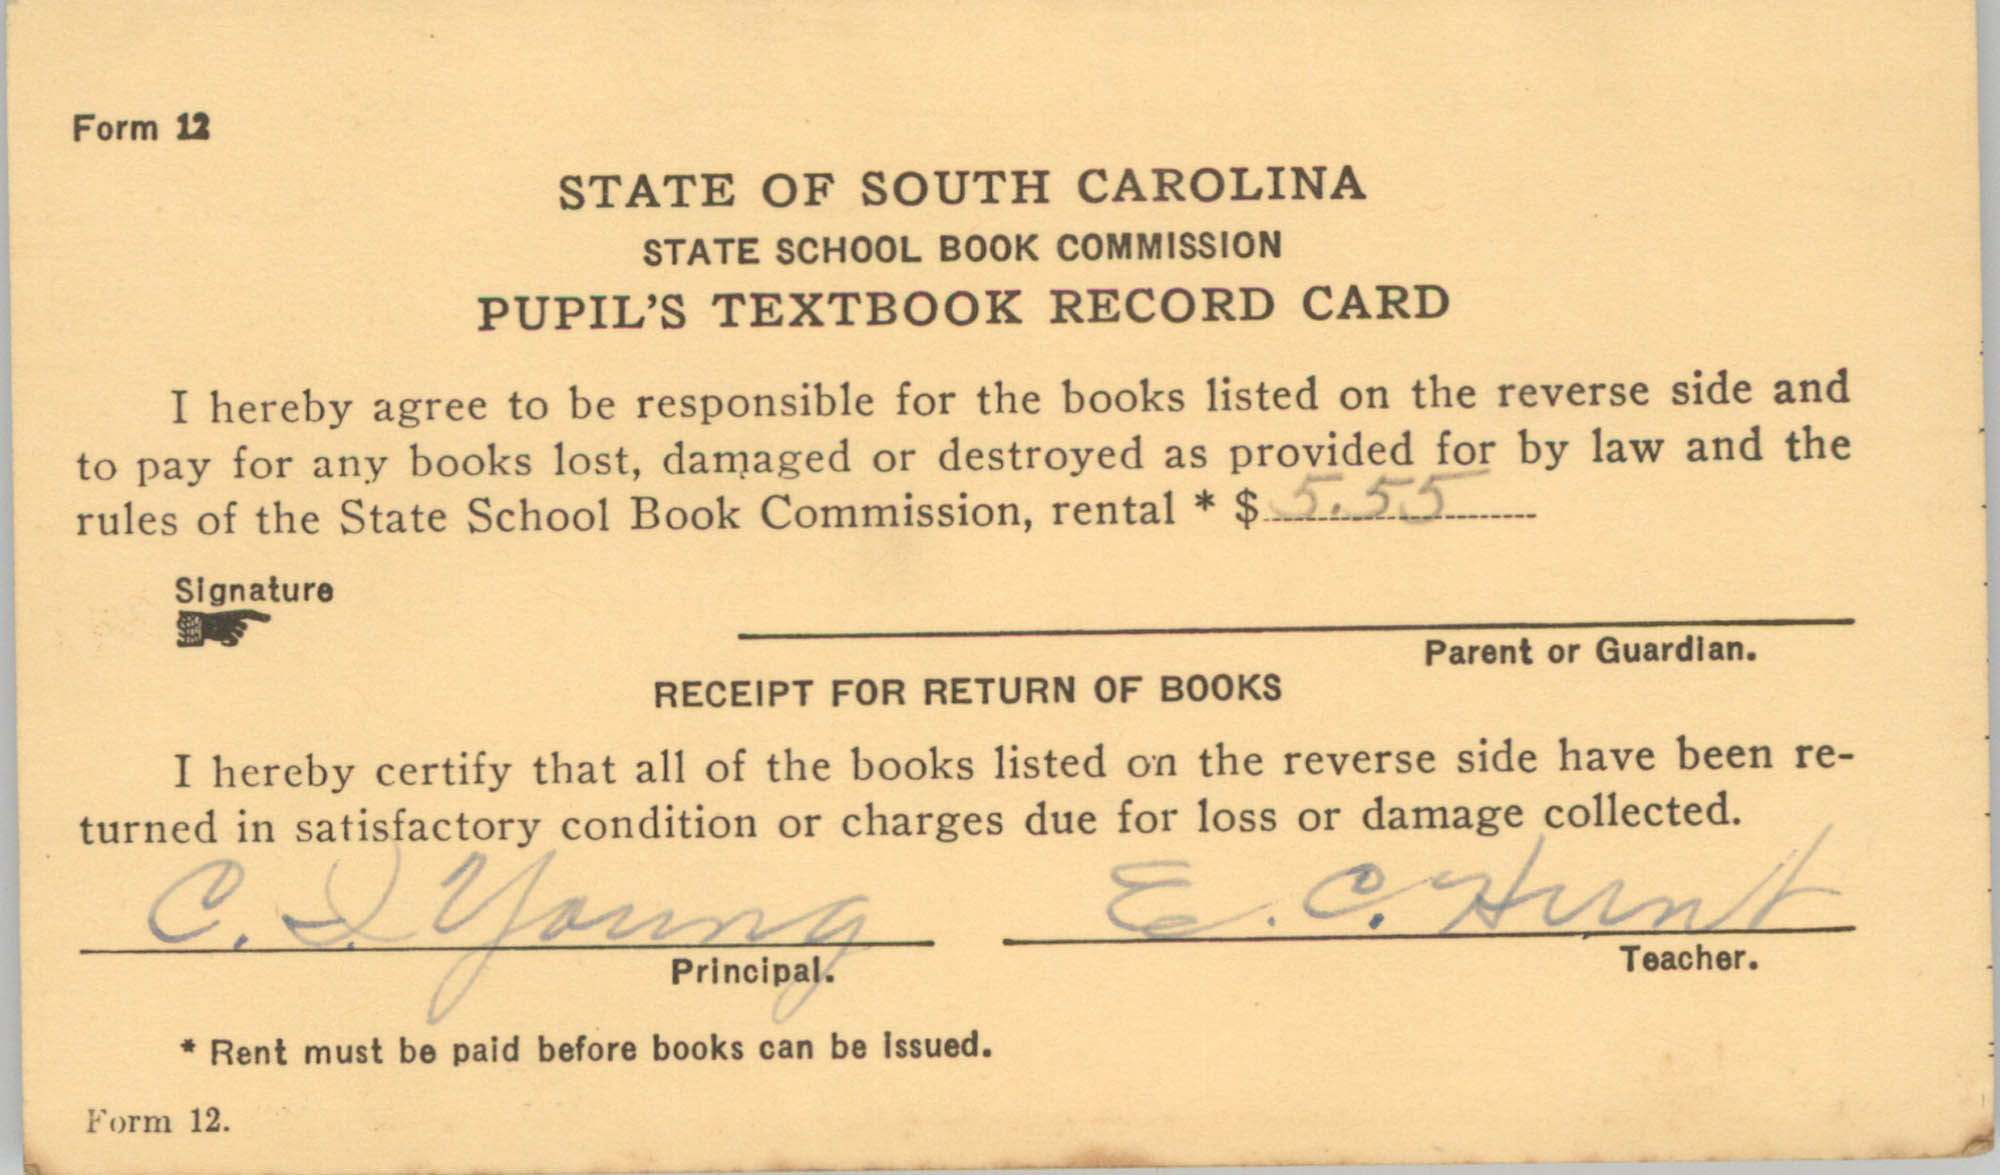 State of South Carolina State School Book Commission Pupil's Textbook Record Cards, Front Card 3